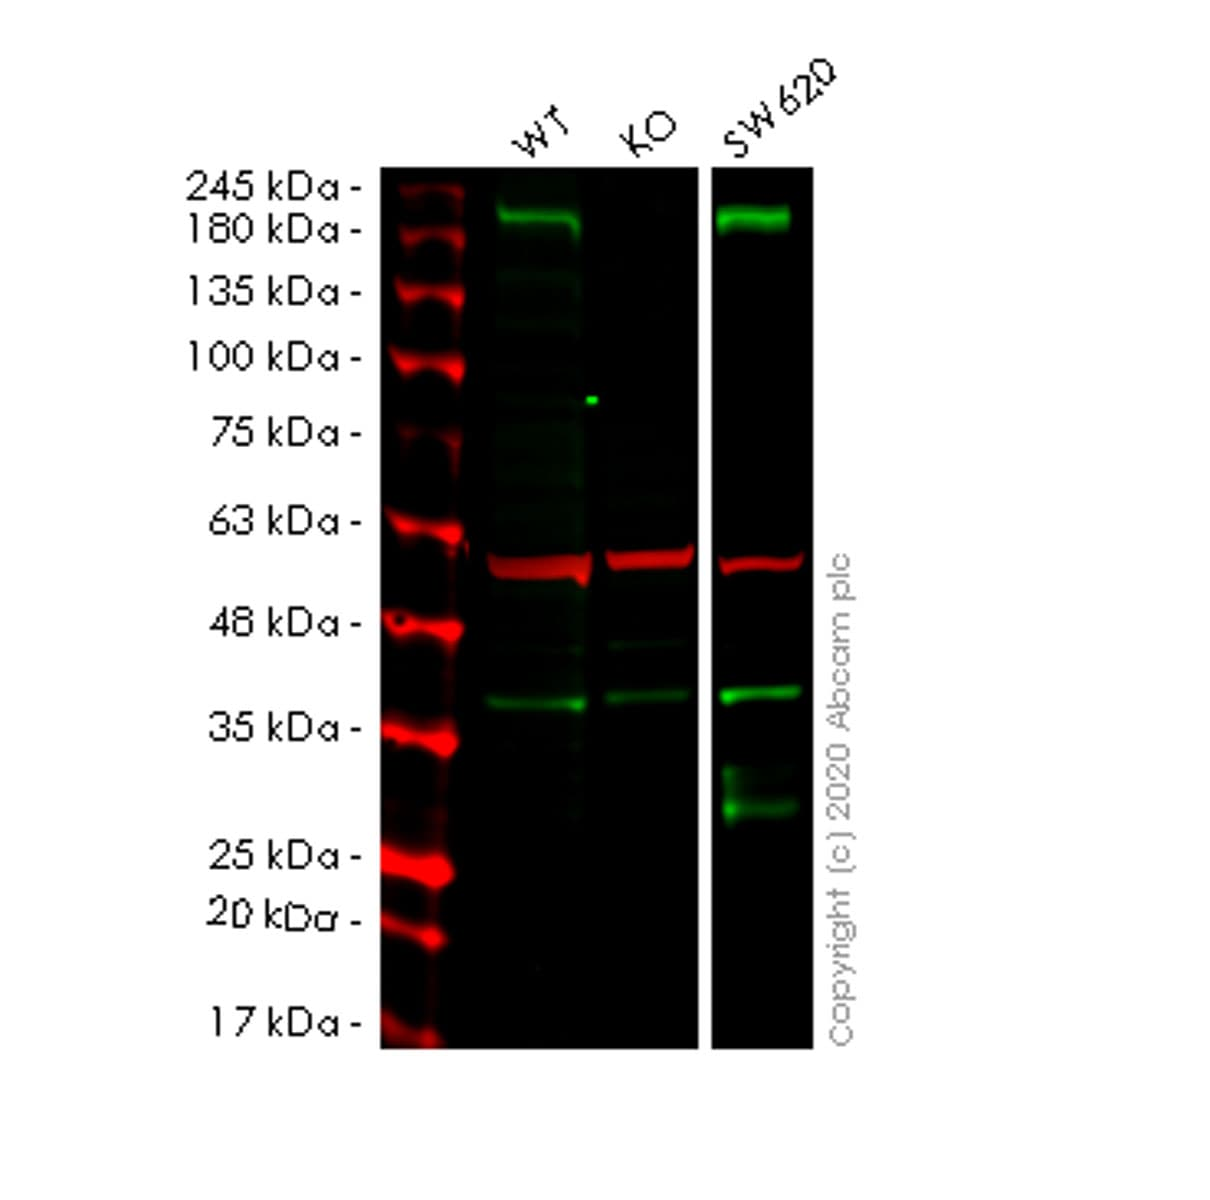 Western blot - Anti-LRP5 antibody [EPR22477-218] - BSA and Azide free (ab256528)